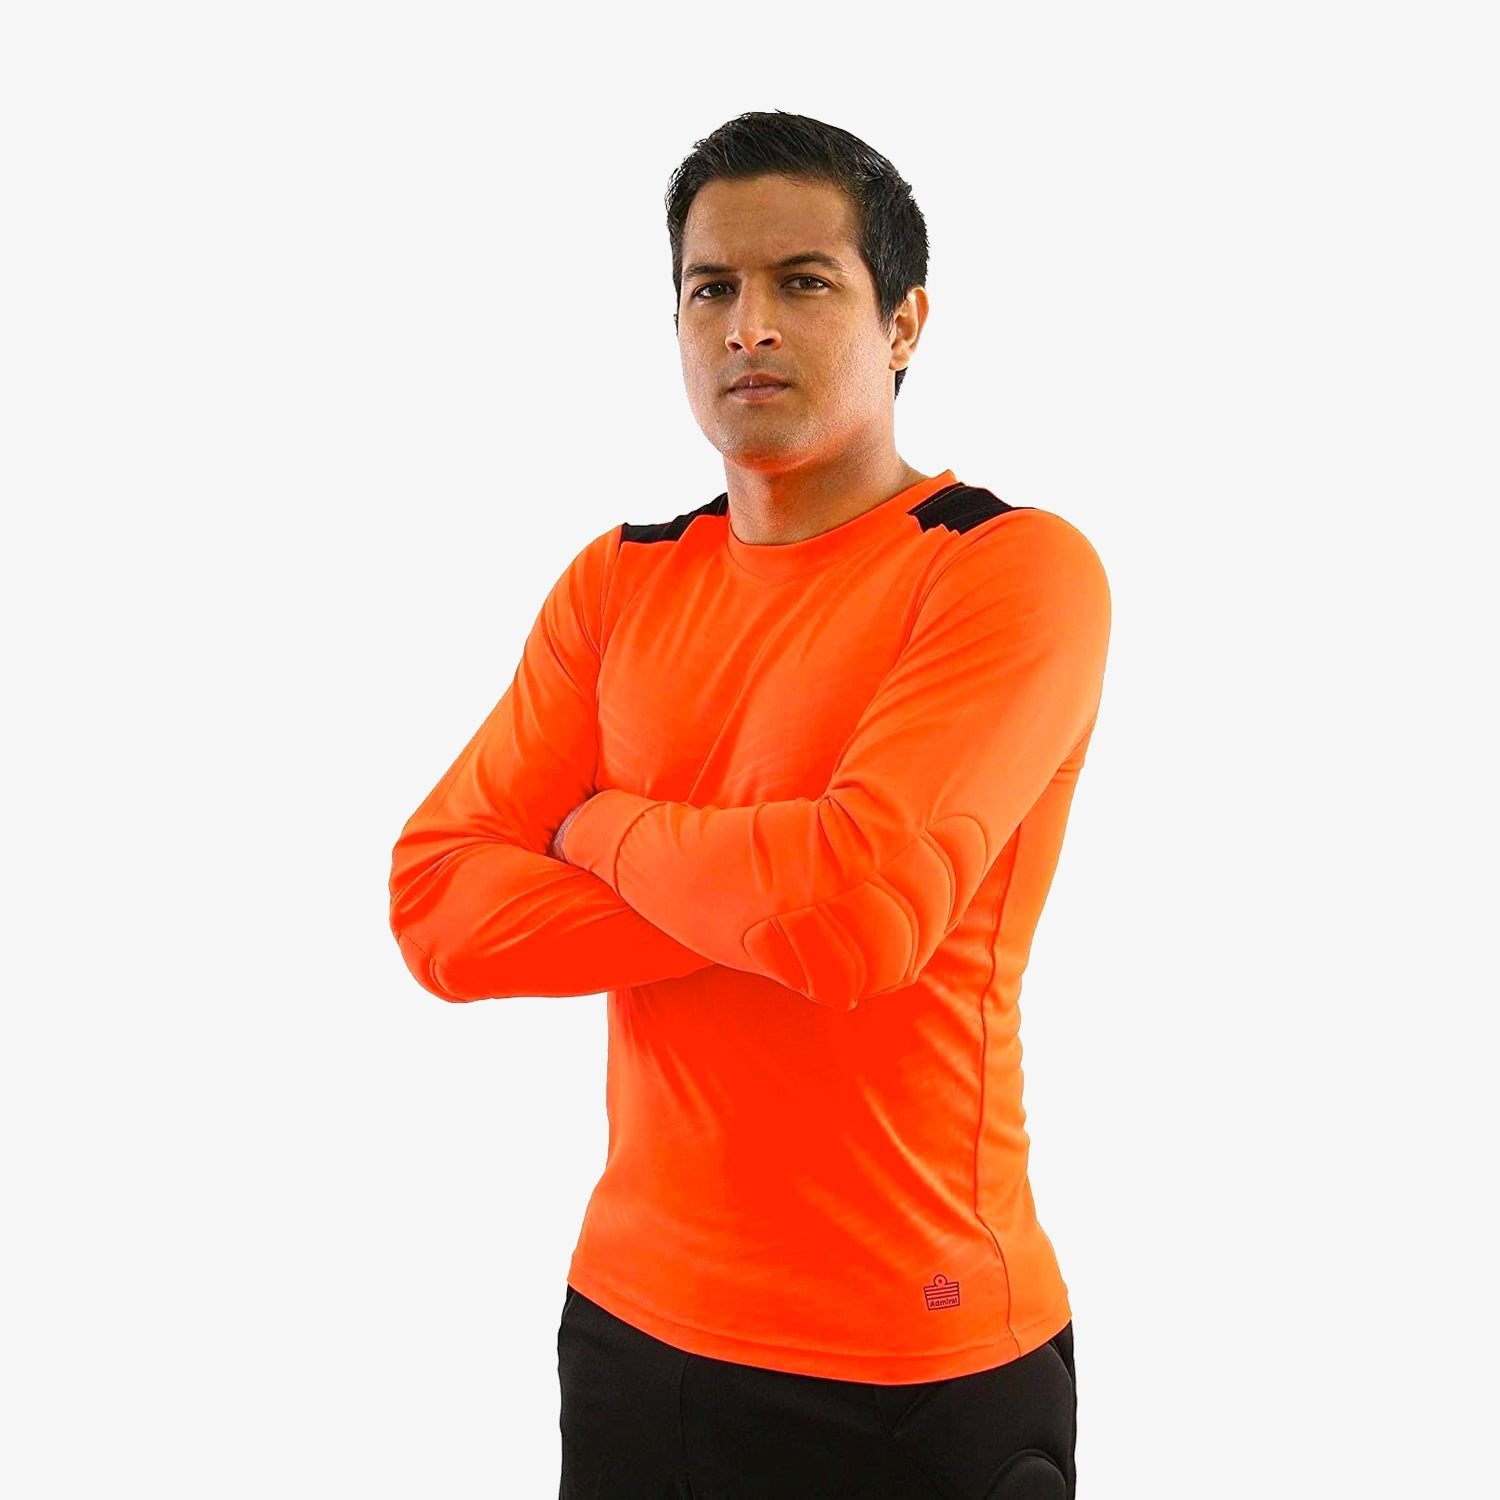 Solo Goalkeeper Soccer Jersey - Orange